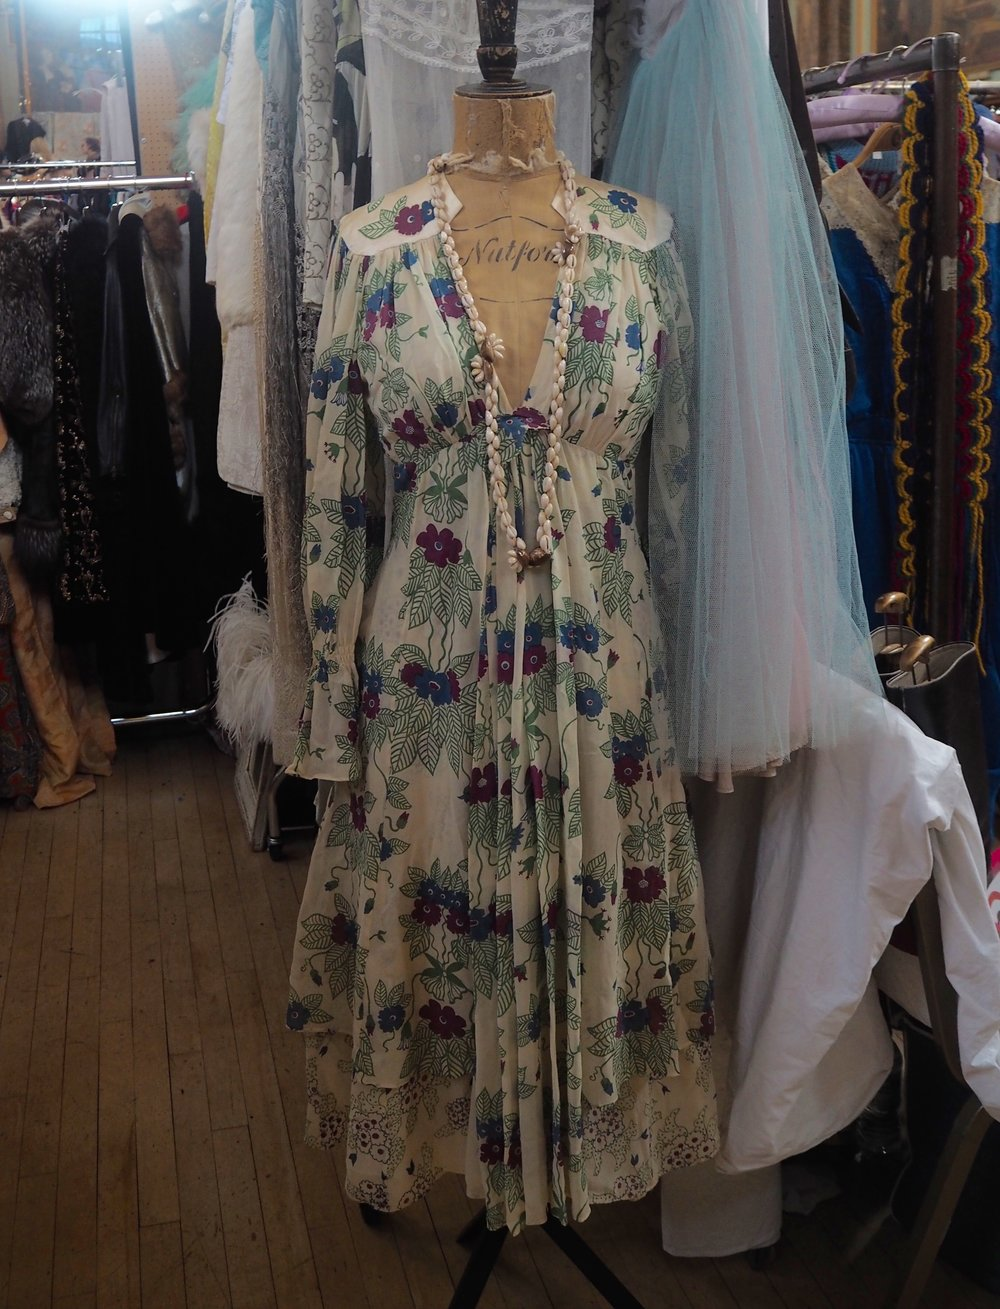 Ossie Clark dress with Celia Birtwell print from Hope & Harlequin